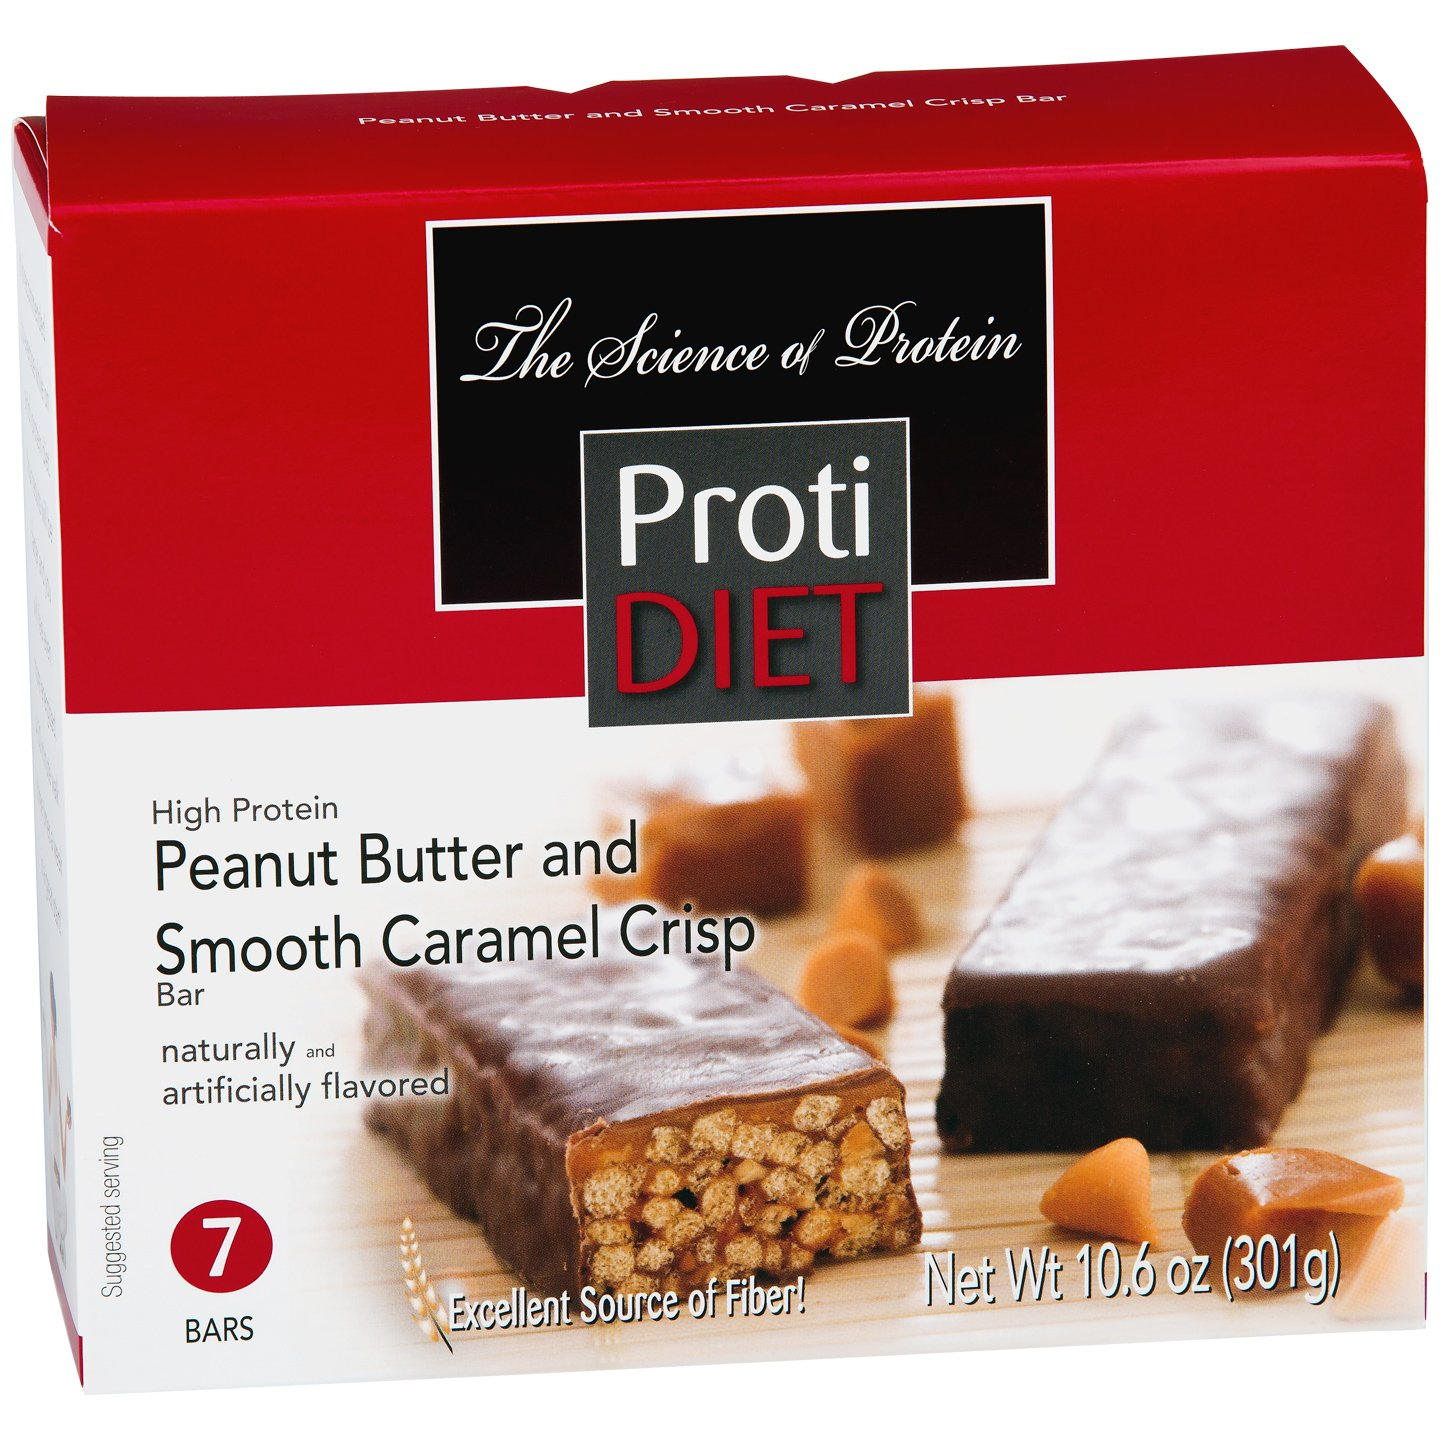 Protidiet Peanut Butter and Smooth Caramel Crisp High Protein Bars (Box of 7) Net Wt 10.6oz